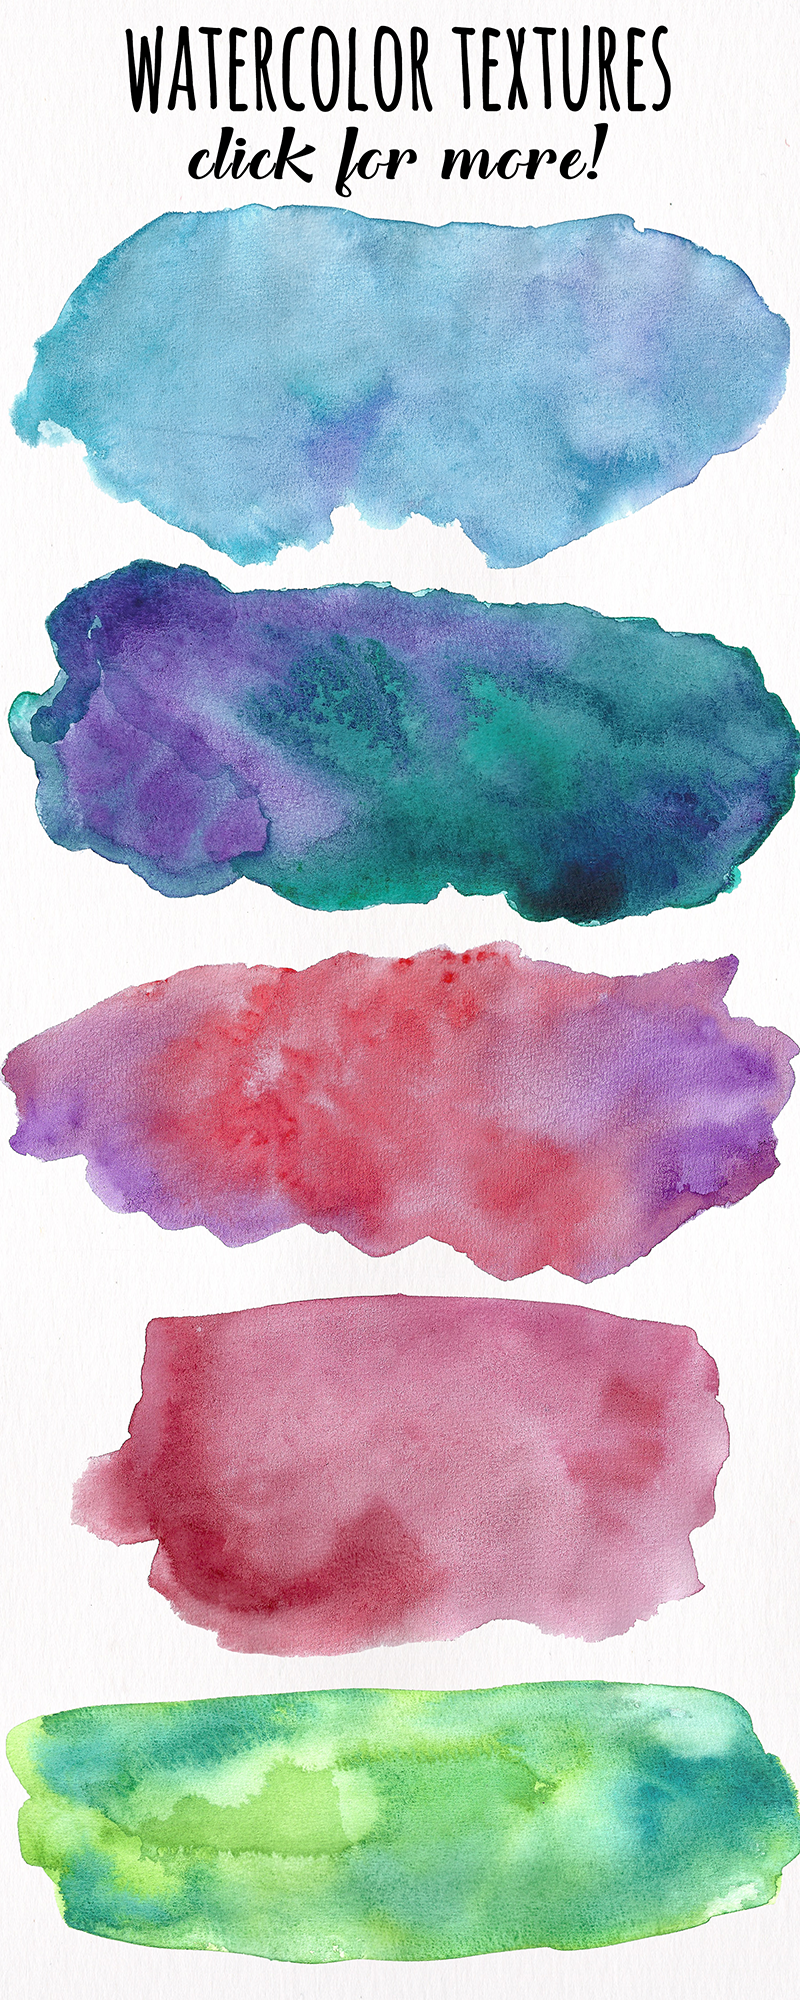 Watercolor Textures - card edition example image 13